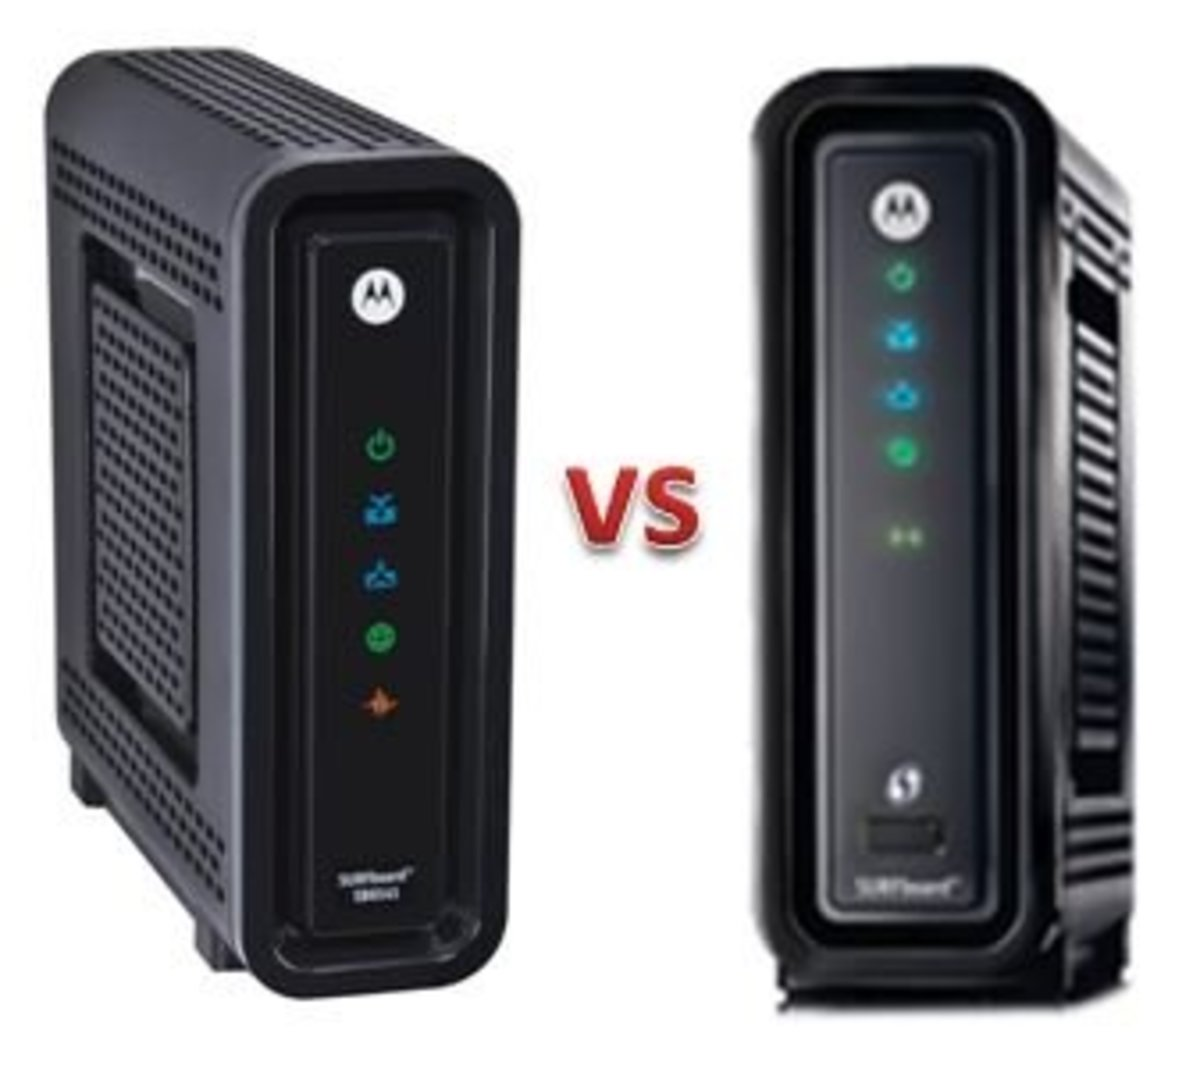 Arris Motorola SB6141 vs SBG6580: Which Is Better?